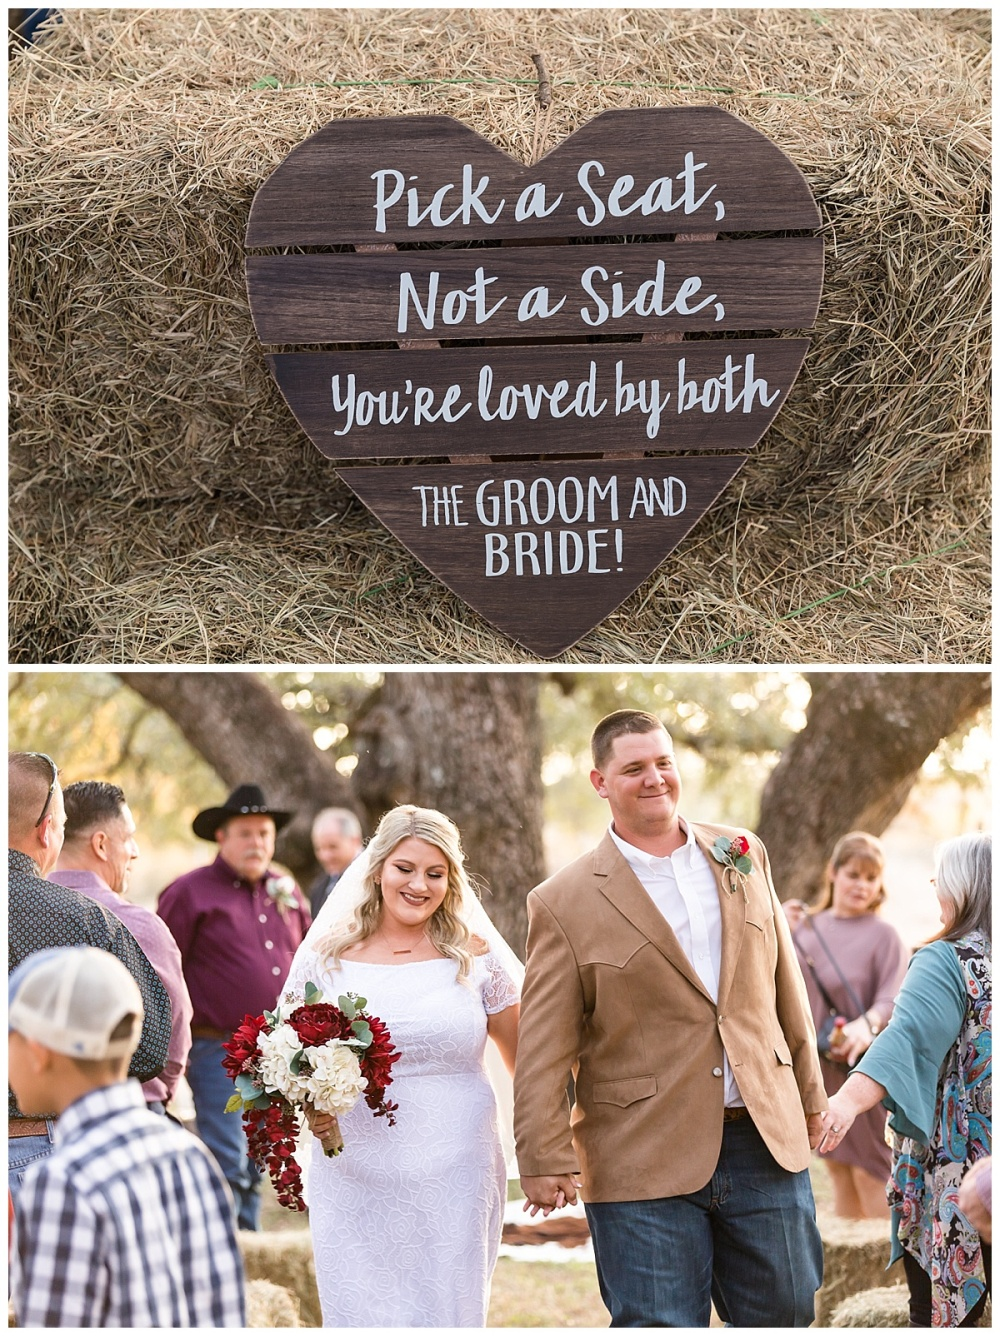 Wedding-Photographer-LaVernia-Texas-Ceremony-Under-the-Trees-Bride-Groom-Fall-McDonald-Carly-Barton-Photography_0026.jpg